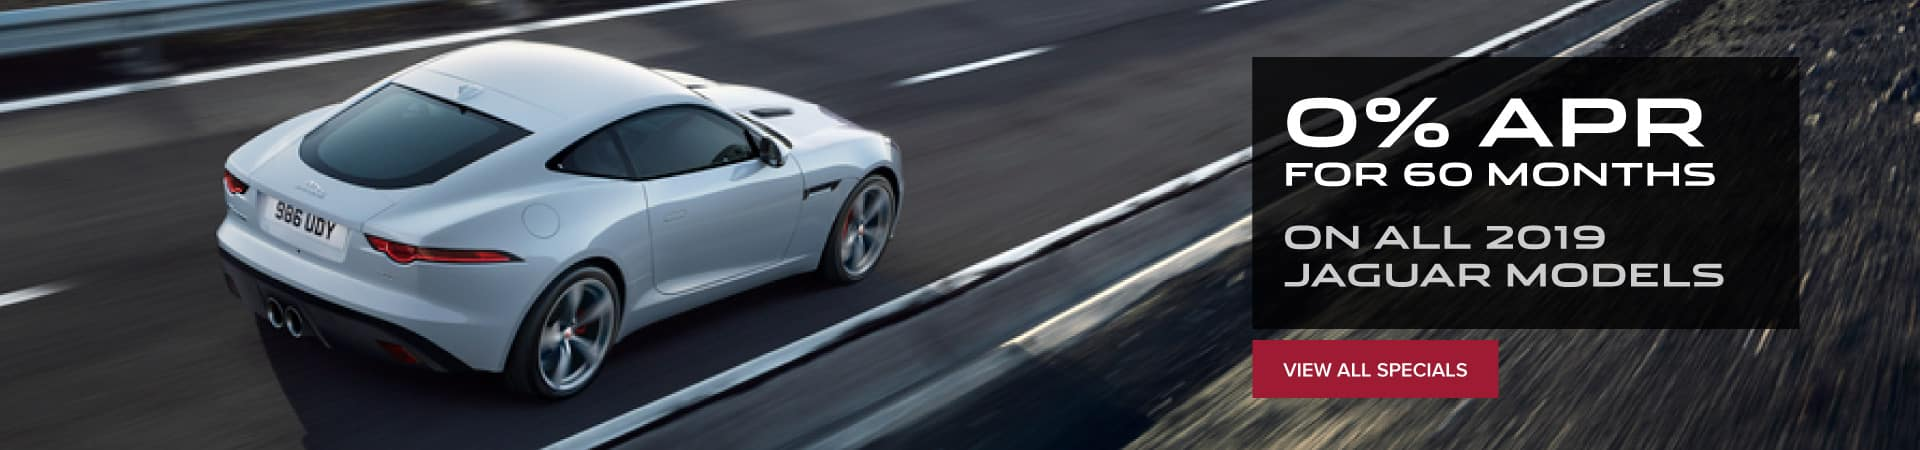 Autobahn Jaguar Fort Worth | July Specials